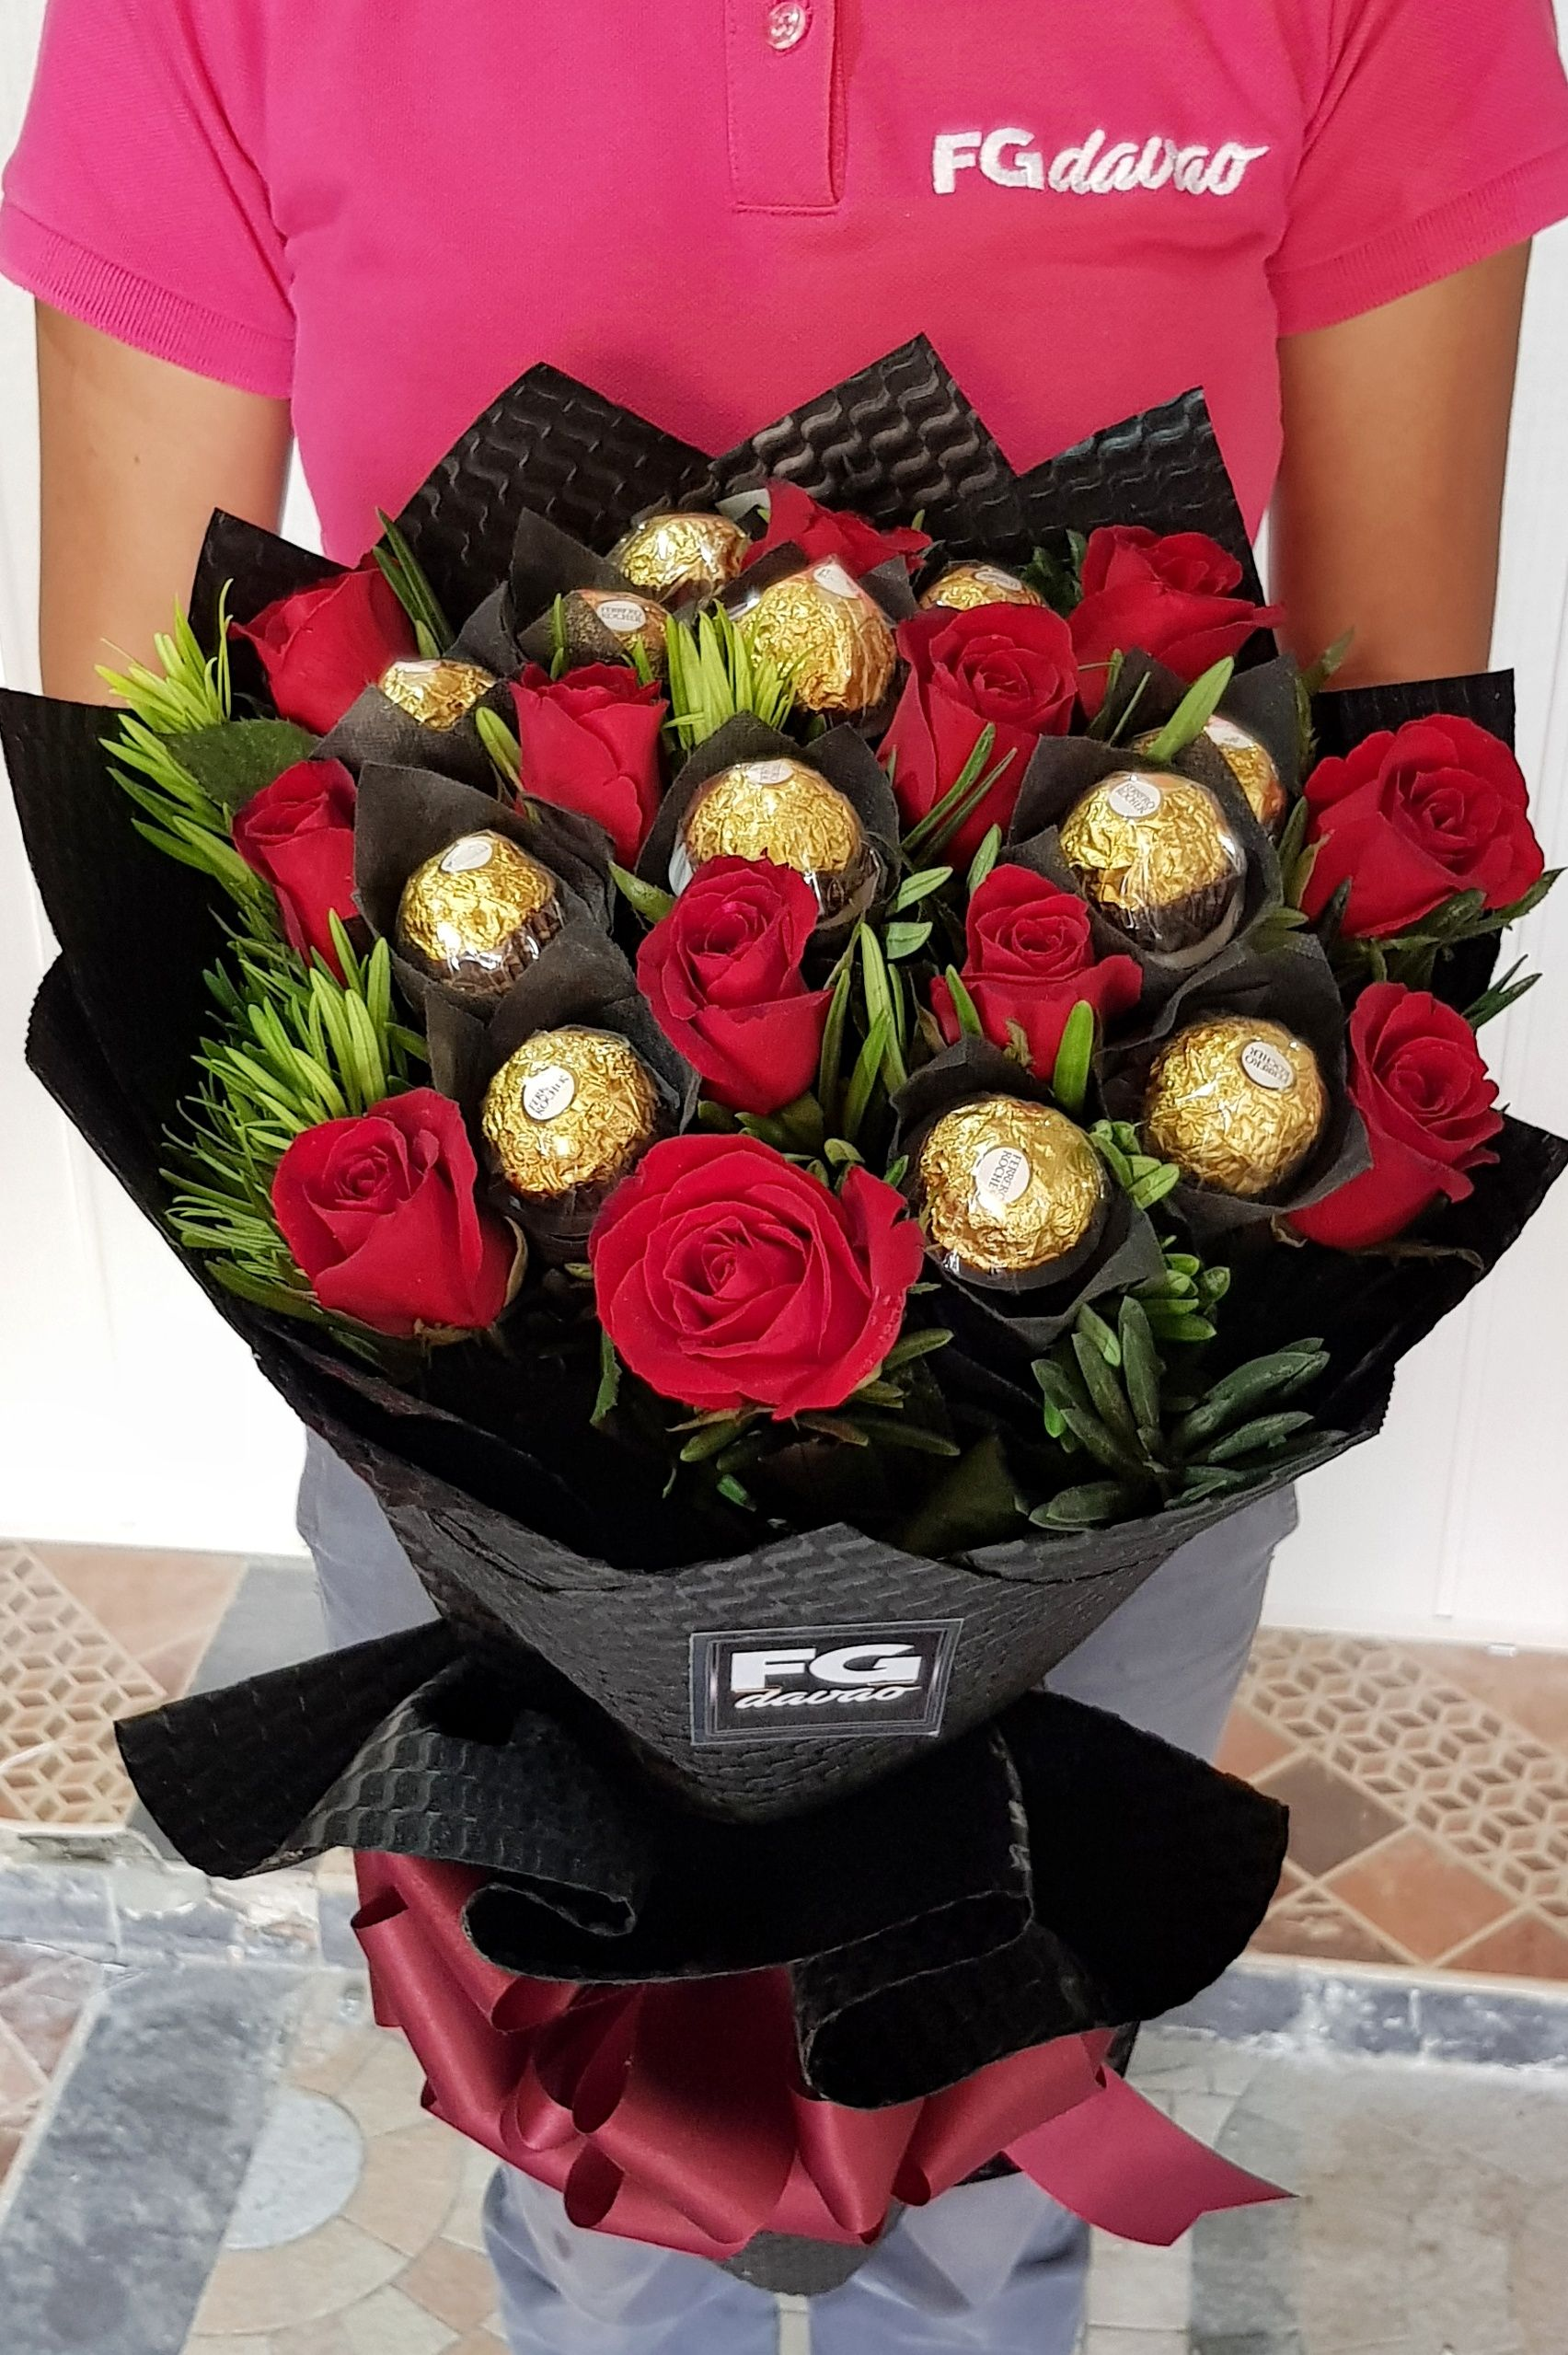 Bouquet Of Roses And Chocolates Send Flowers To Davao City Philippines Www Fgdavao Com Price List Can Online Flower Shop Flower Delivery Flower Arrangements